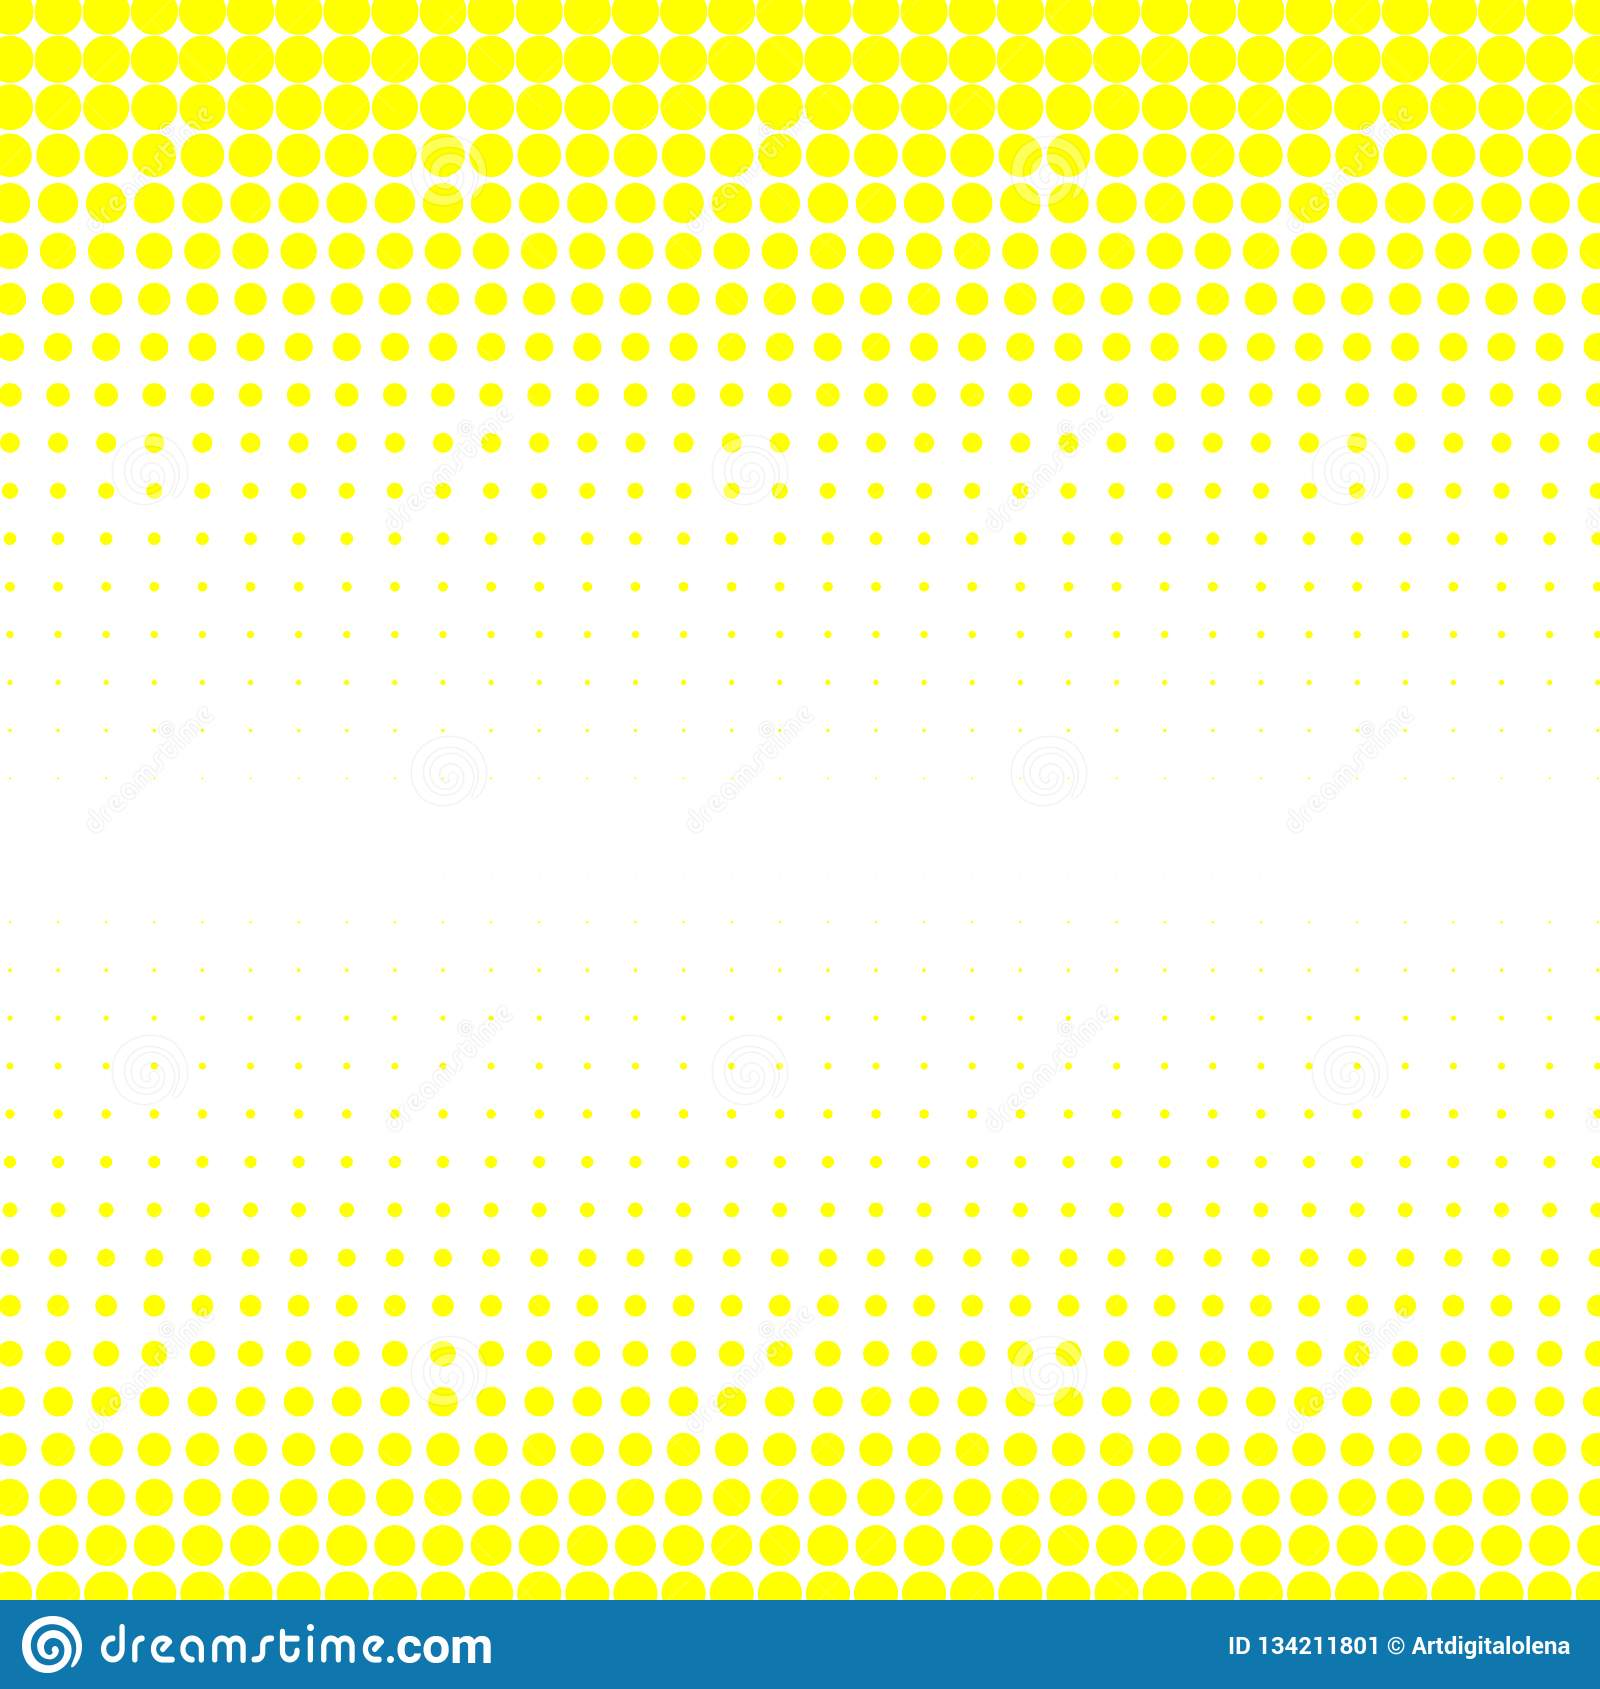 The background of yellow dots of different sizes have different density on the white.